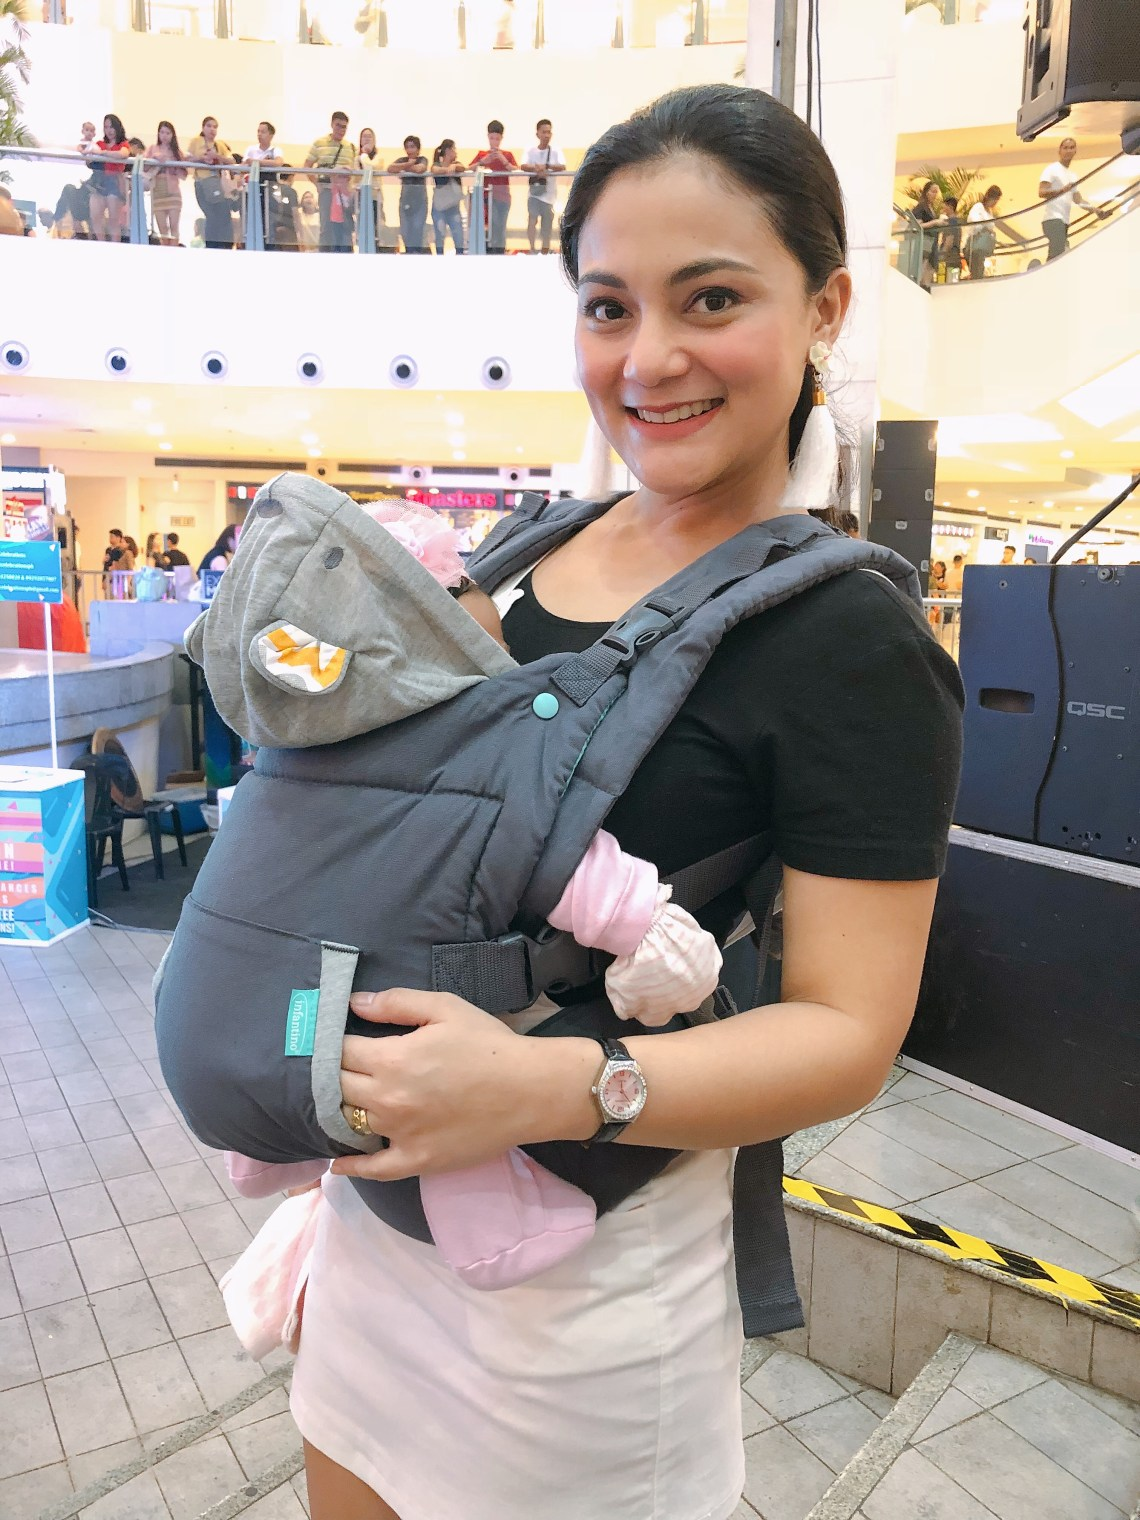 dyosathemomma: Infantino Baby Philippines, baby carrier, baby wearing, mommy blogger ph